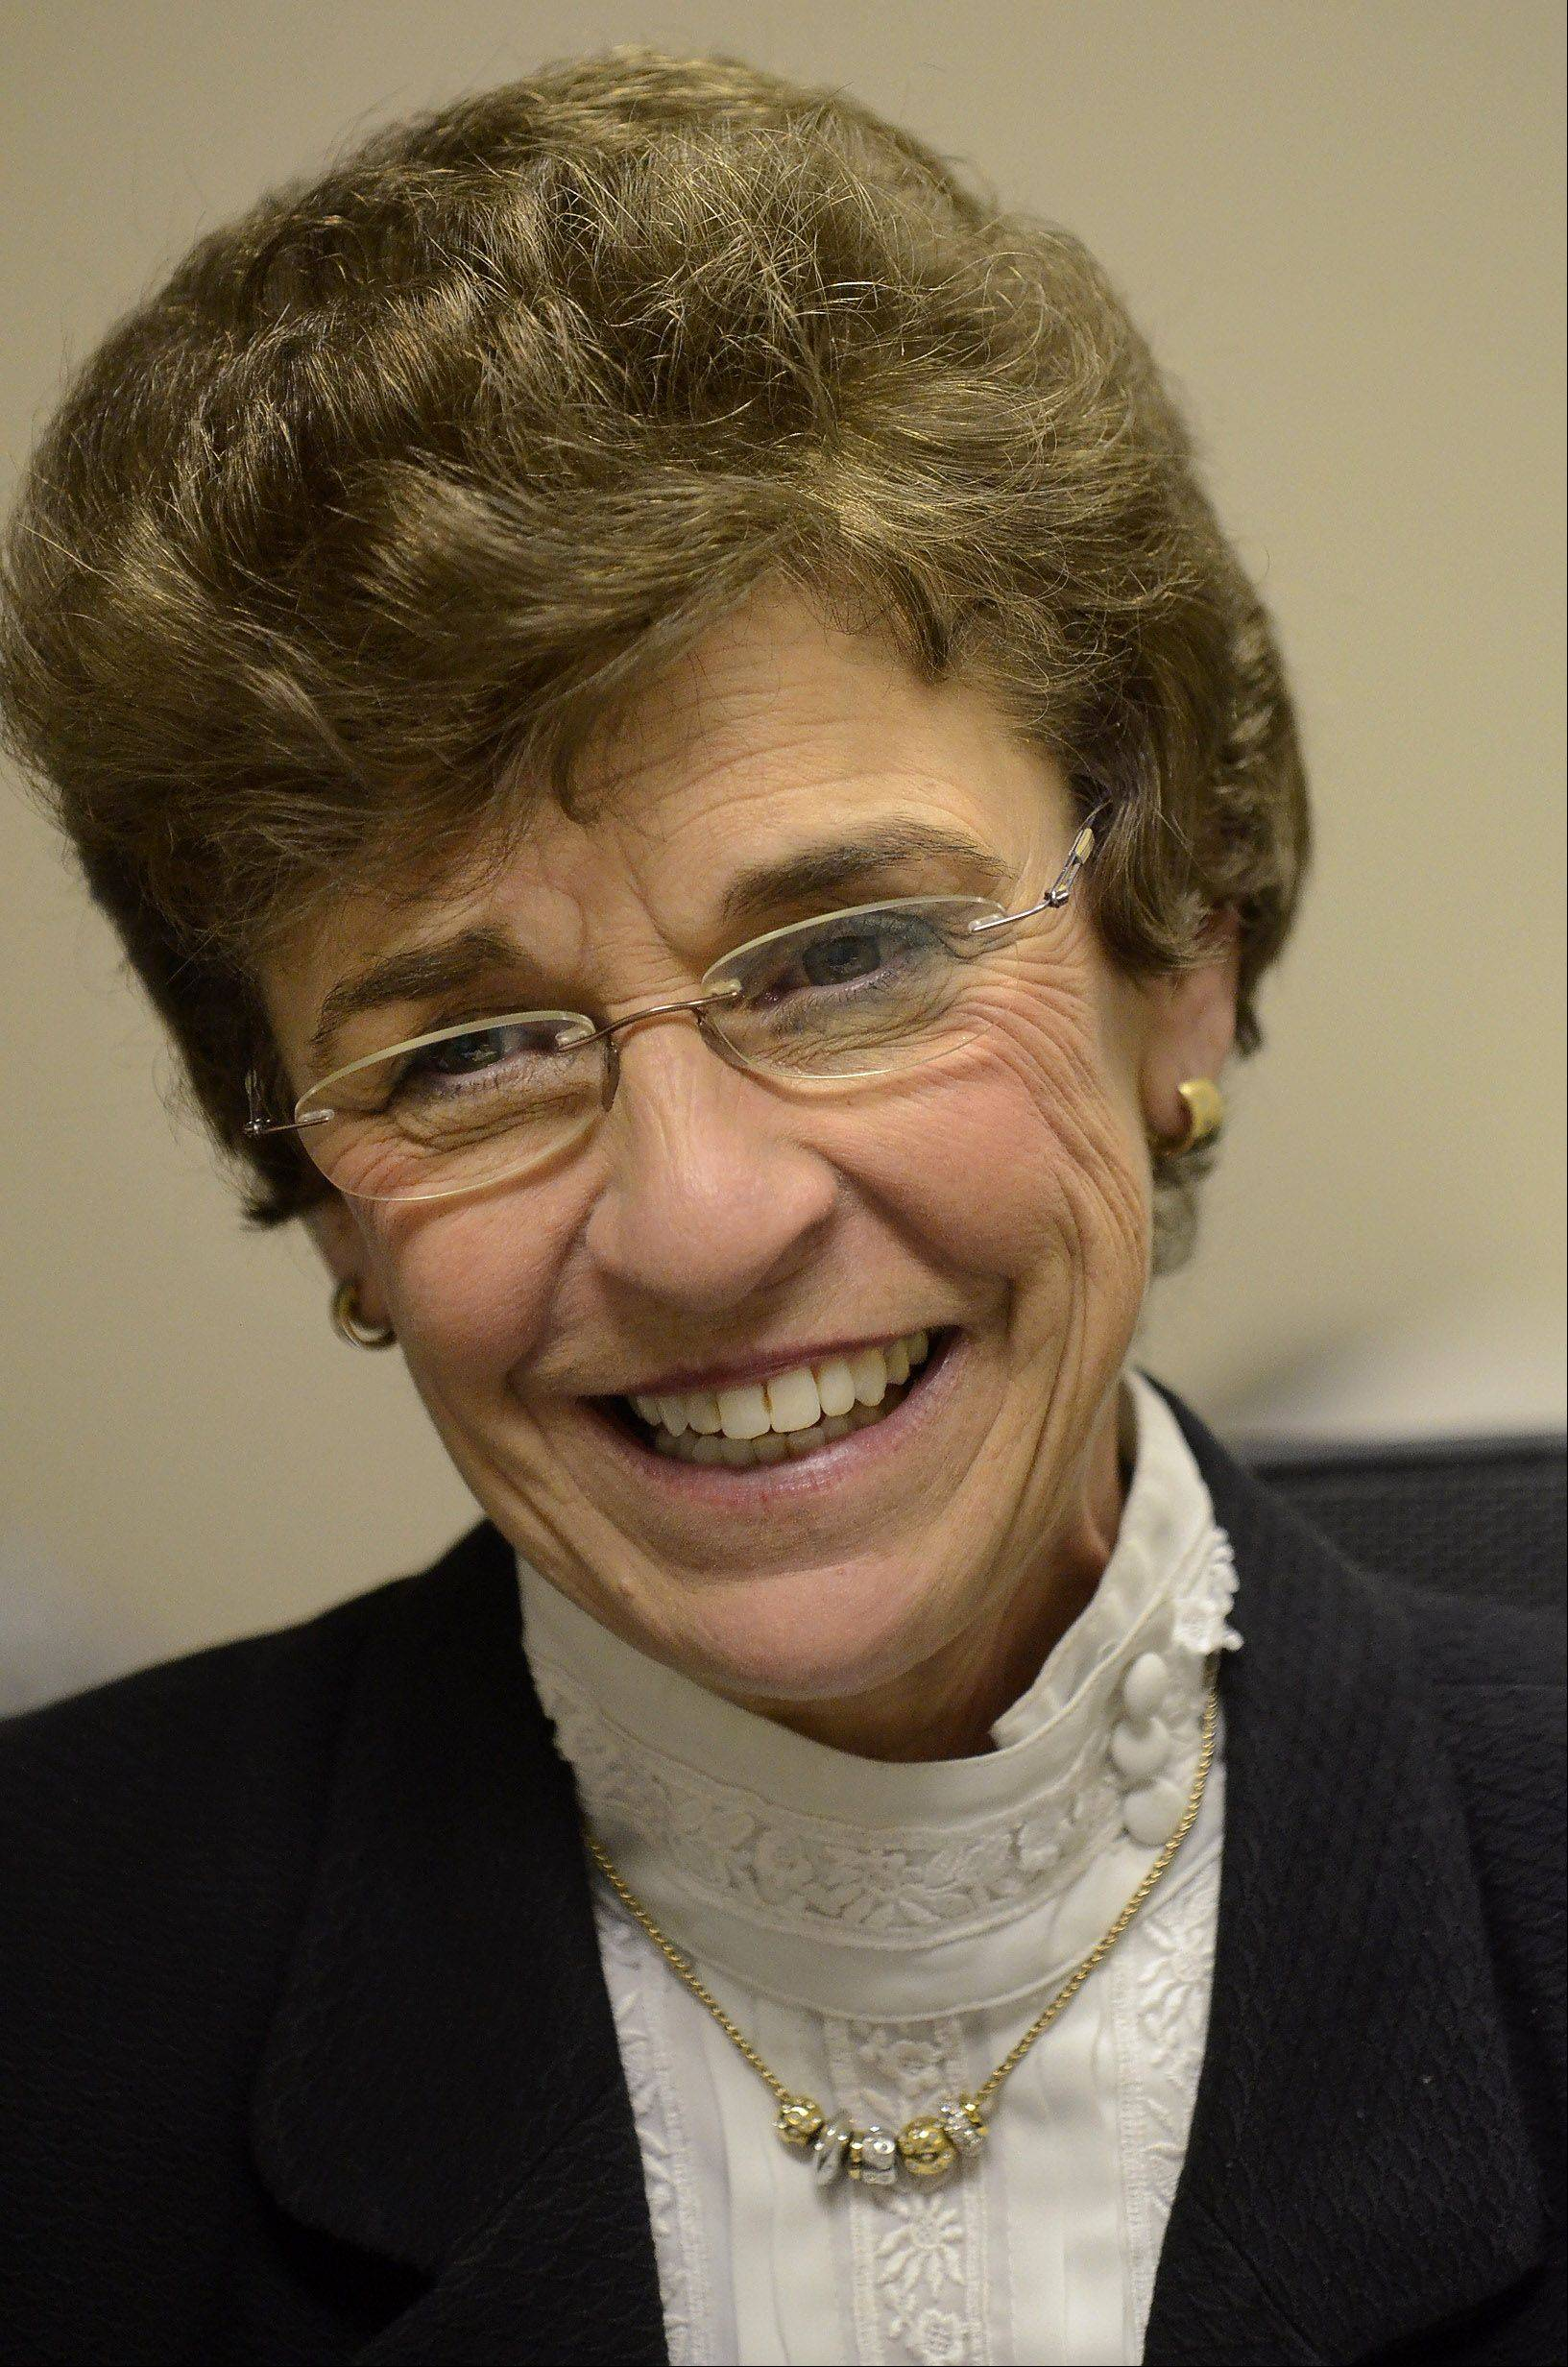 Bob Chwedyk/bchwedyk@dailyherald.com Arlington Heights Village President Arlene Mulder, on the eve of her departure from office. She leaves a lasting legacy.